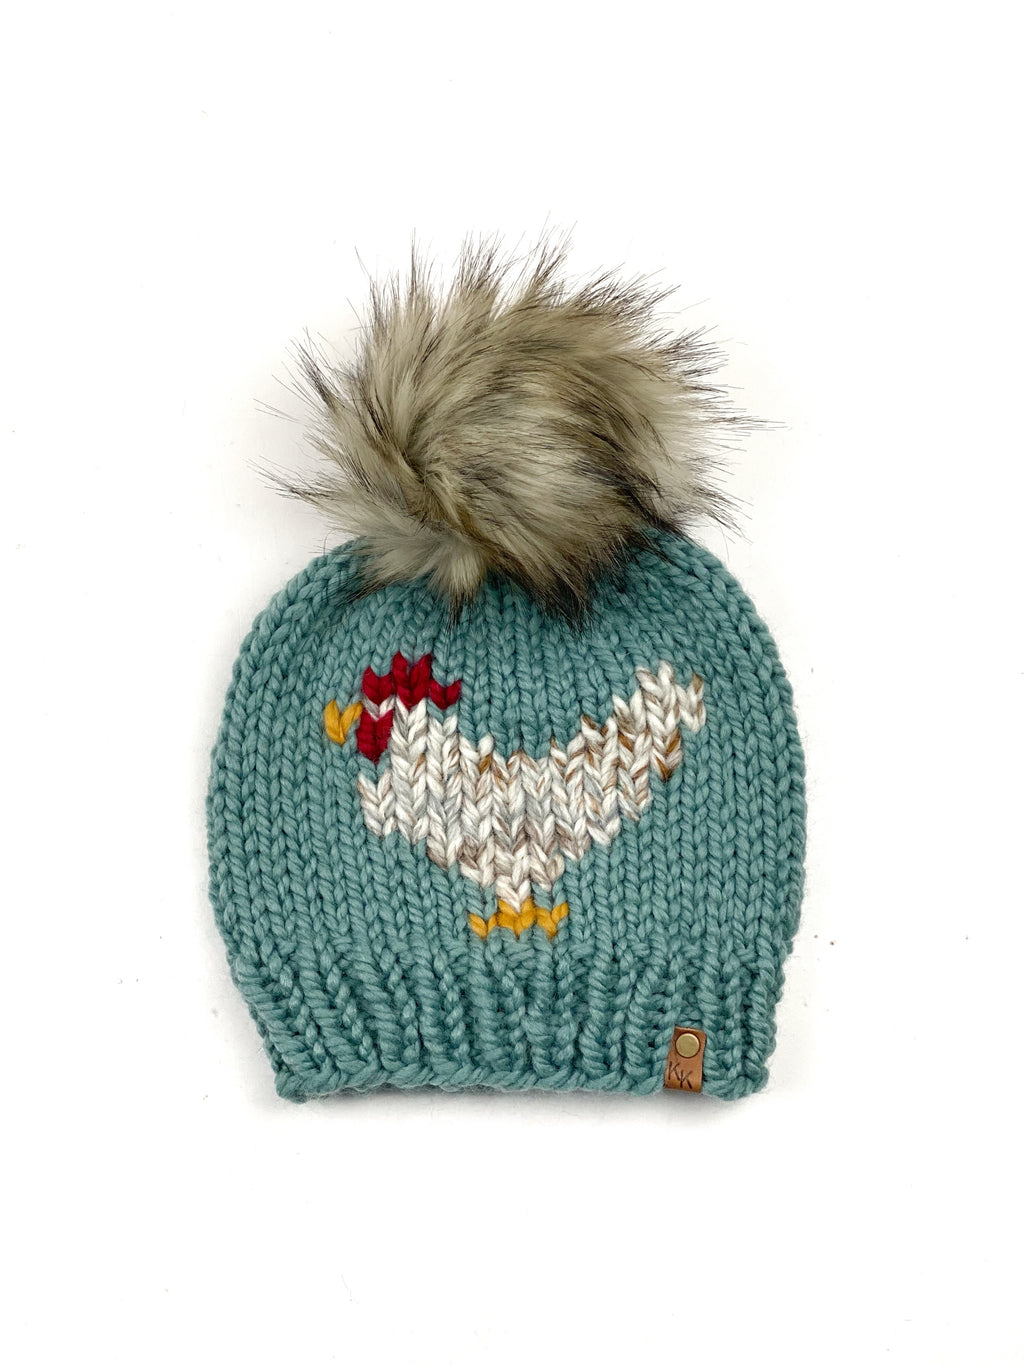 Chicken Hat Succulent & Fossil Beanie Wool Blend Womens Adult Hat Faux Fur Pom Pom Hat